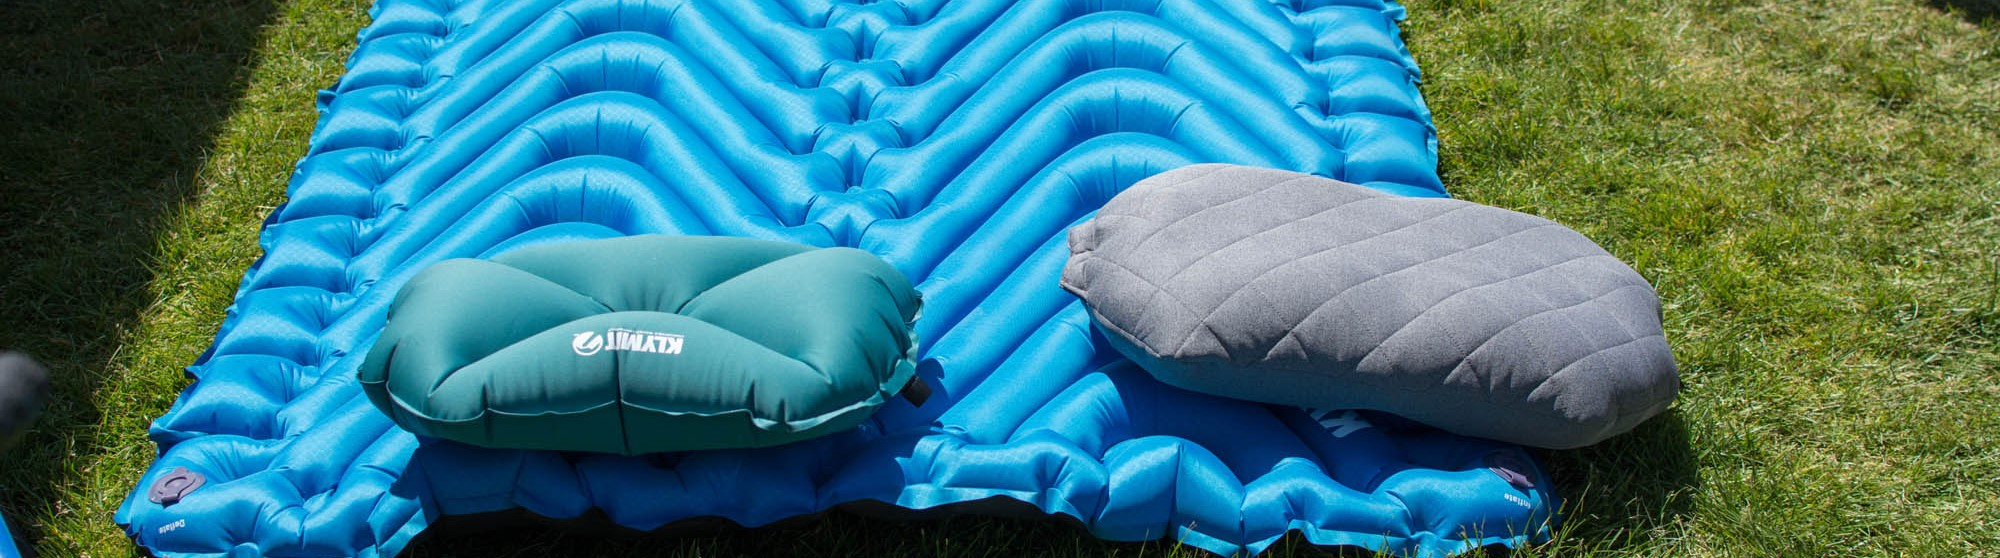 Best Camping Mattresses Reviewed in Detail